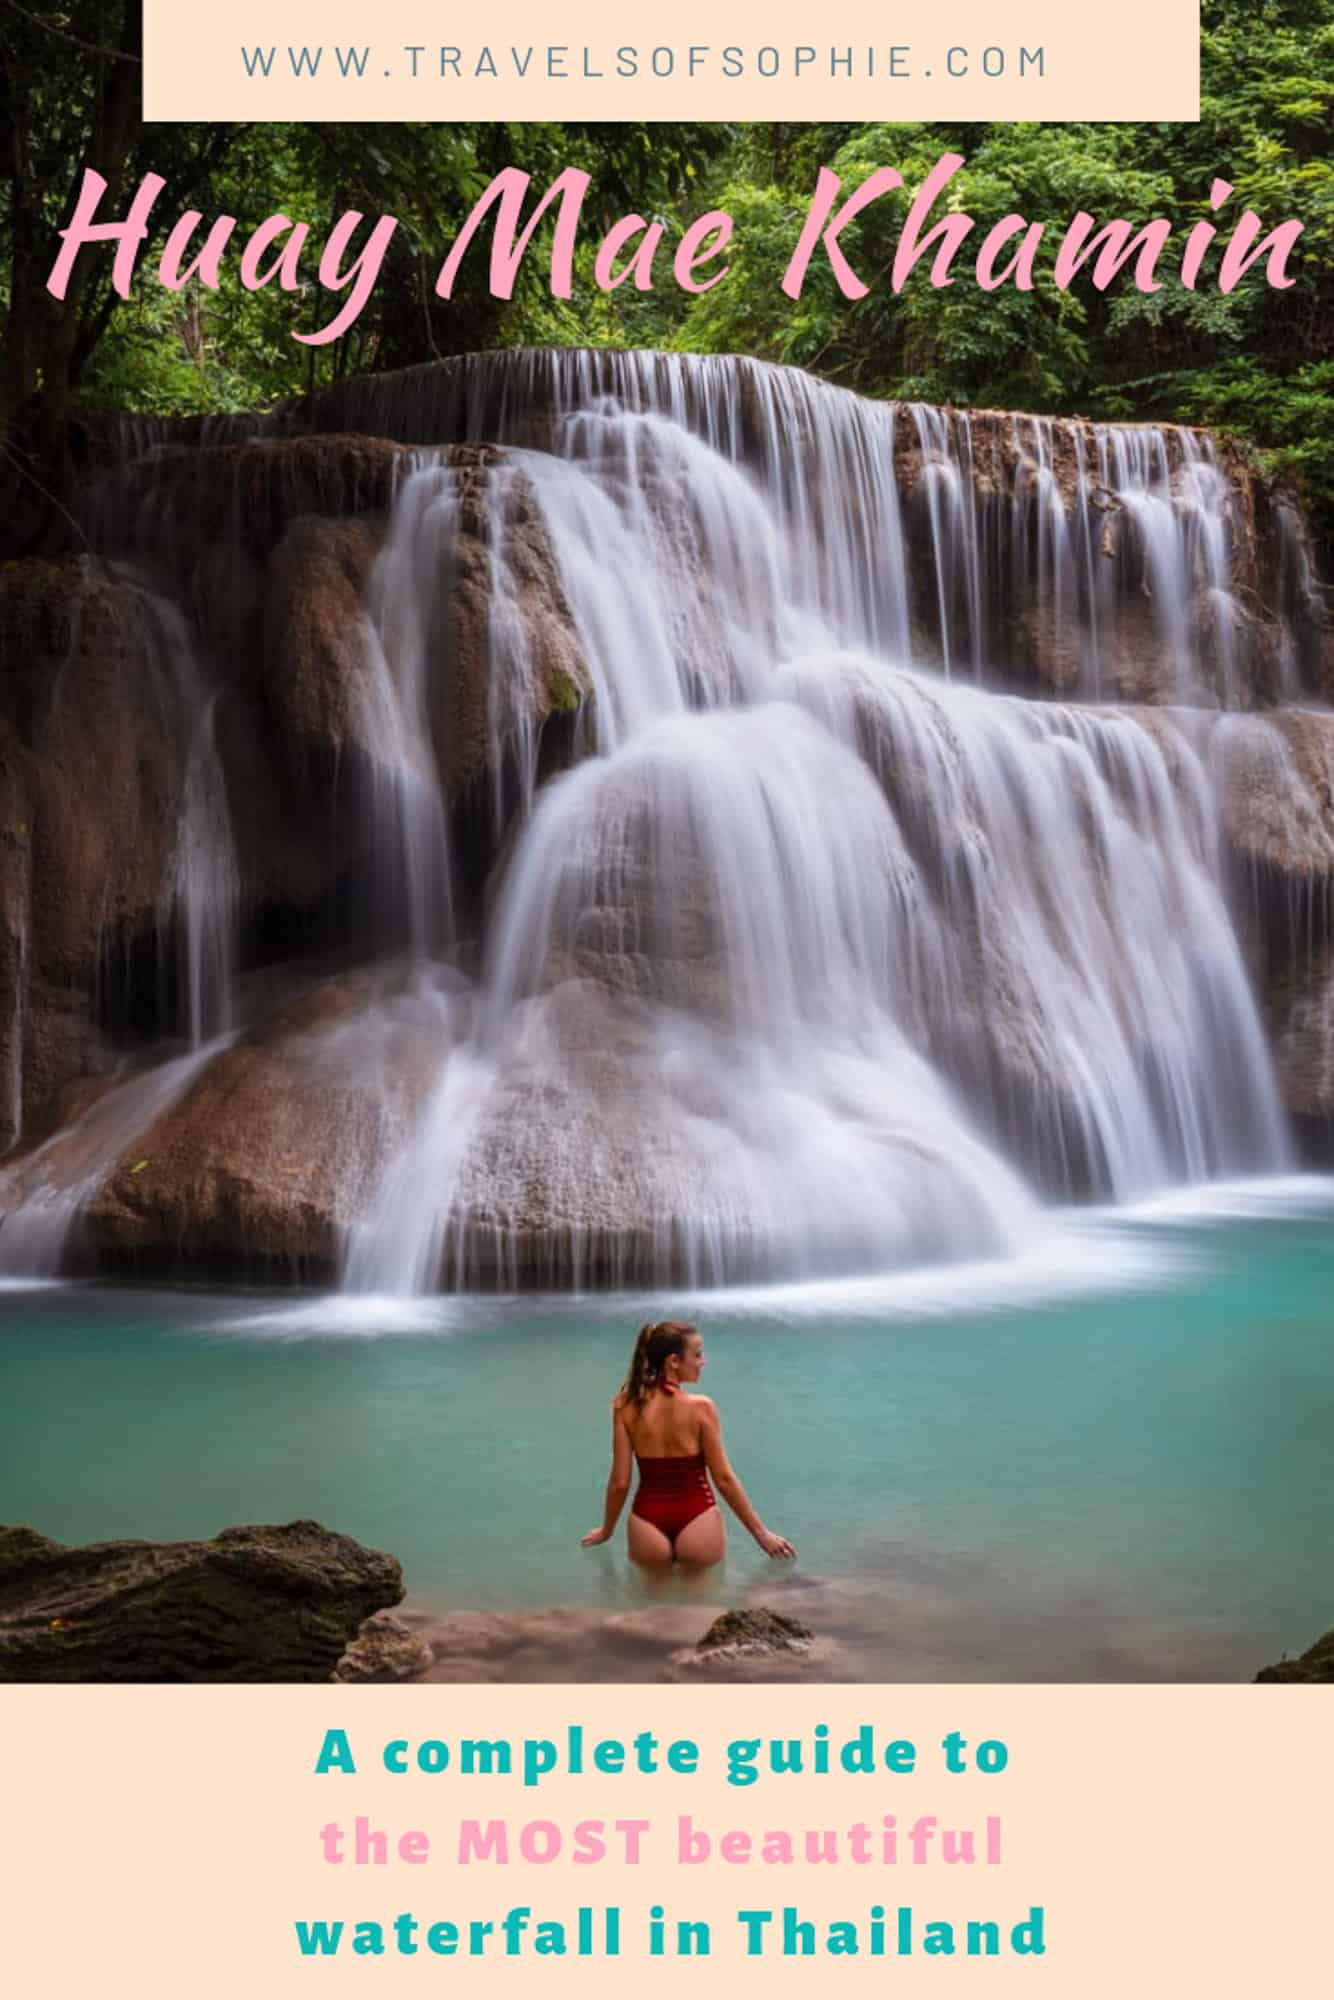 Huay Mae Khamin Waterfall: A complete guide to the best waterfall in Thailand.  Discover everything you need to know about this hidden gem outside of Kanchanaburi.